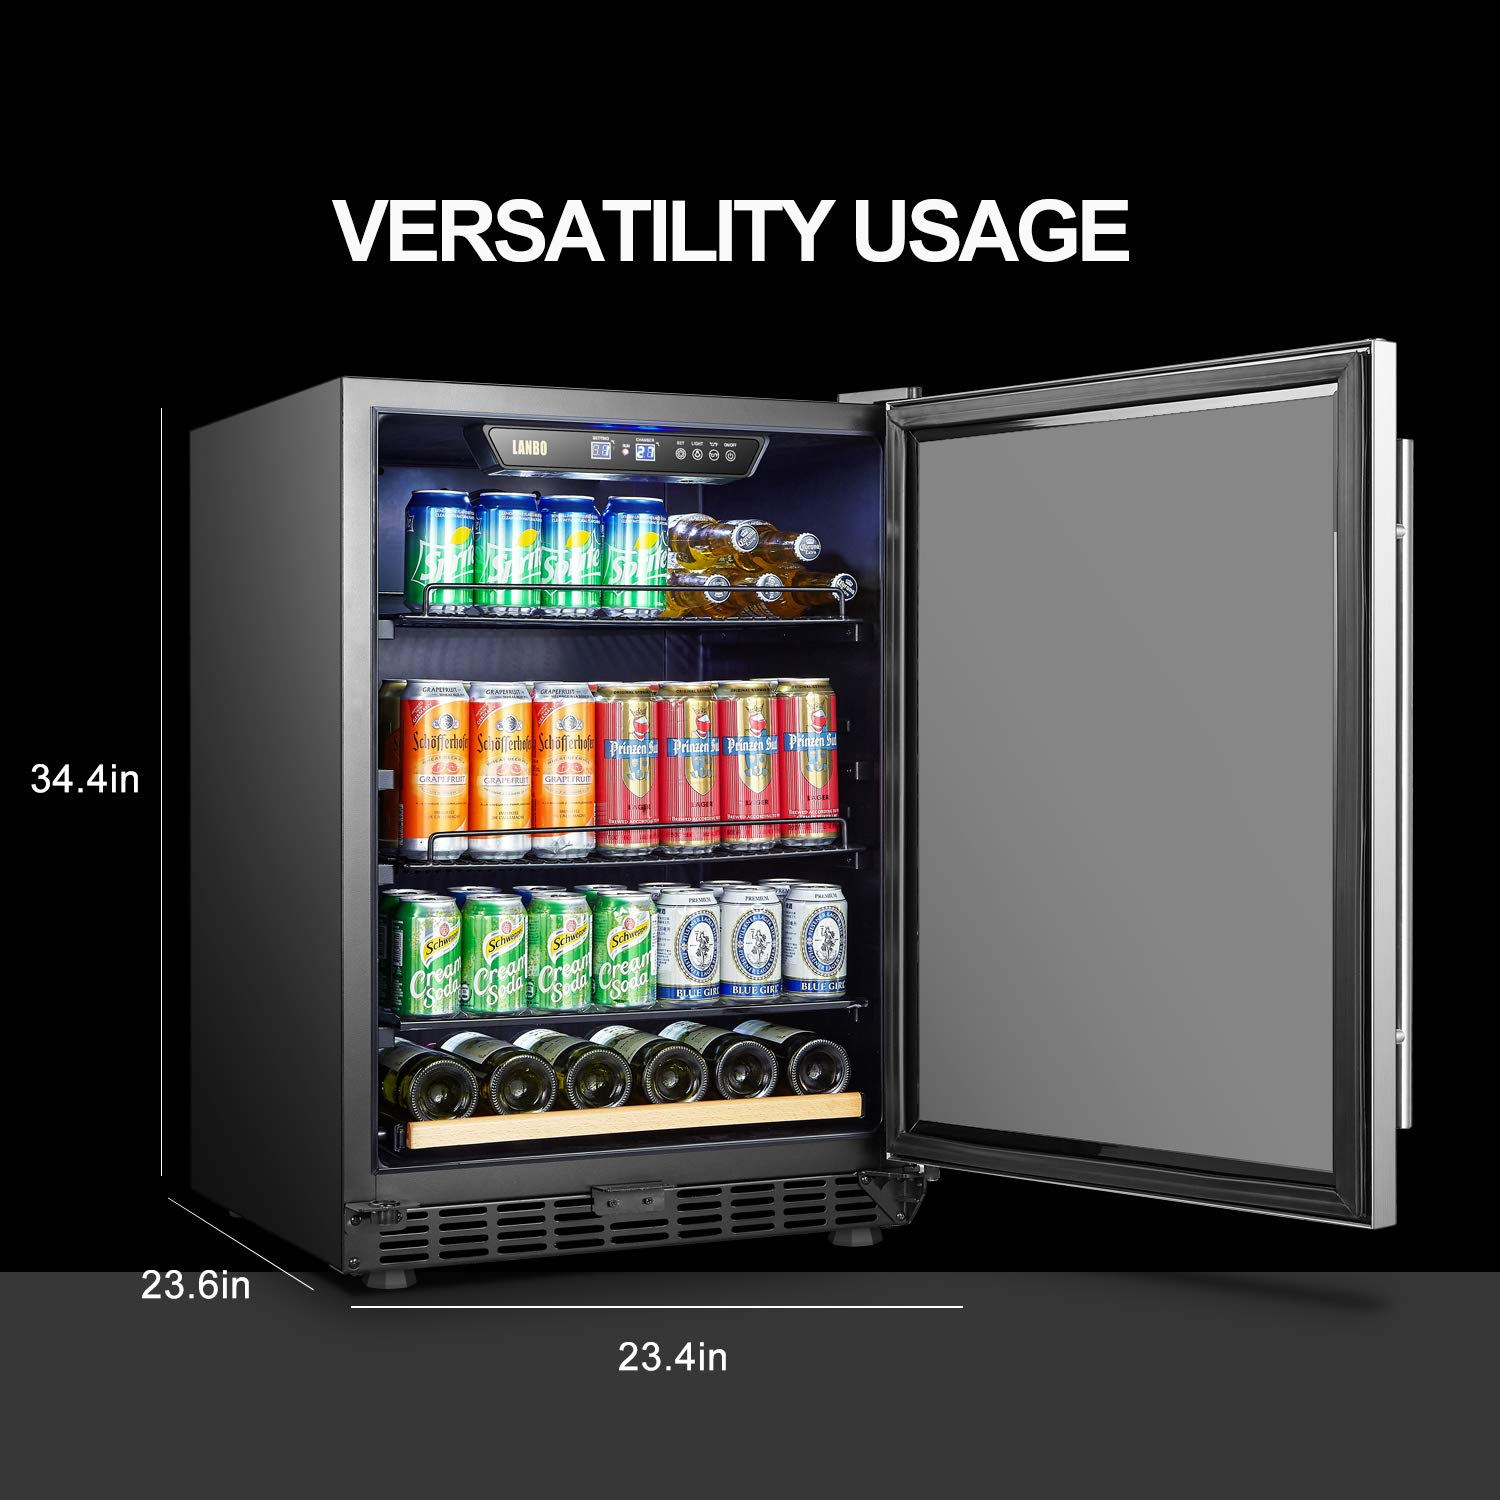 LANBO Beverage Cooler Refrigerator, 110 Cans 6 Bottles Built-in Compressor Drink Fridge with Double-Paned Tempered Glass Door by Lanbo (Image #3)